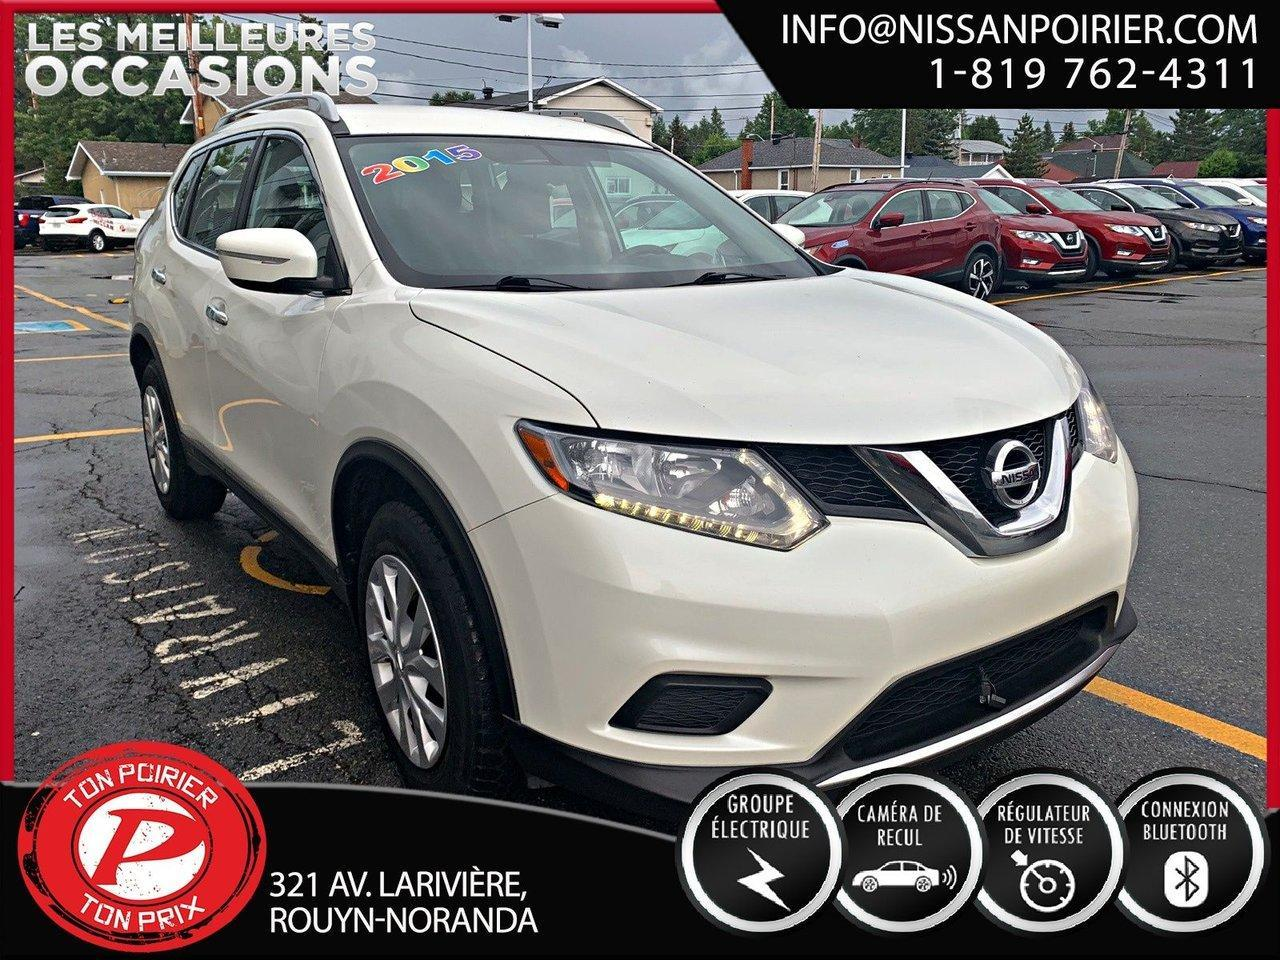 used 2015 nissan rogue s for sale in rouyn-noranda, quebec carpages.ca